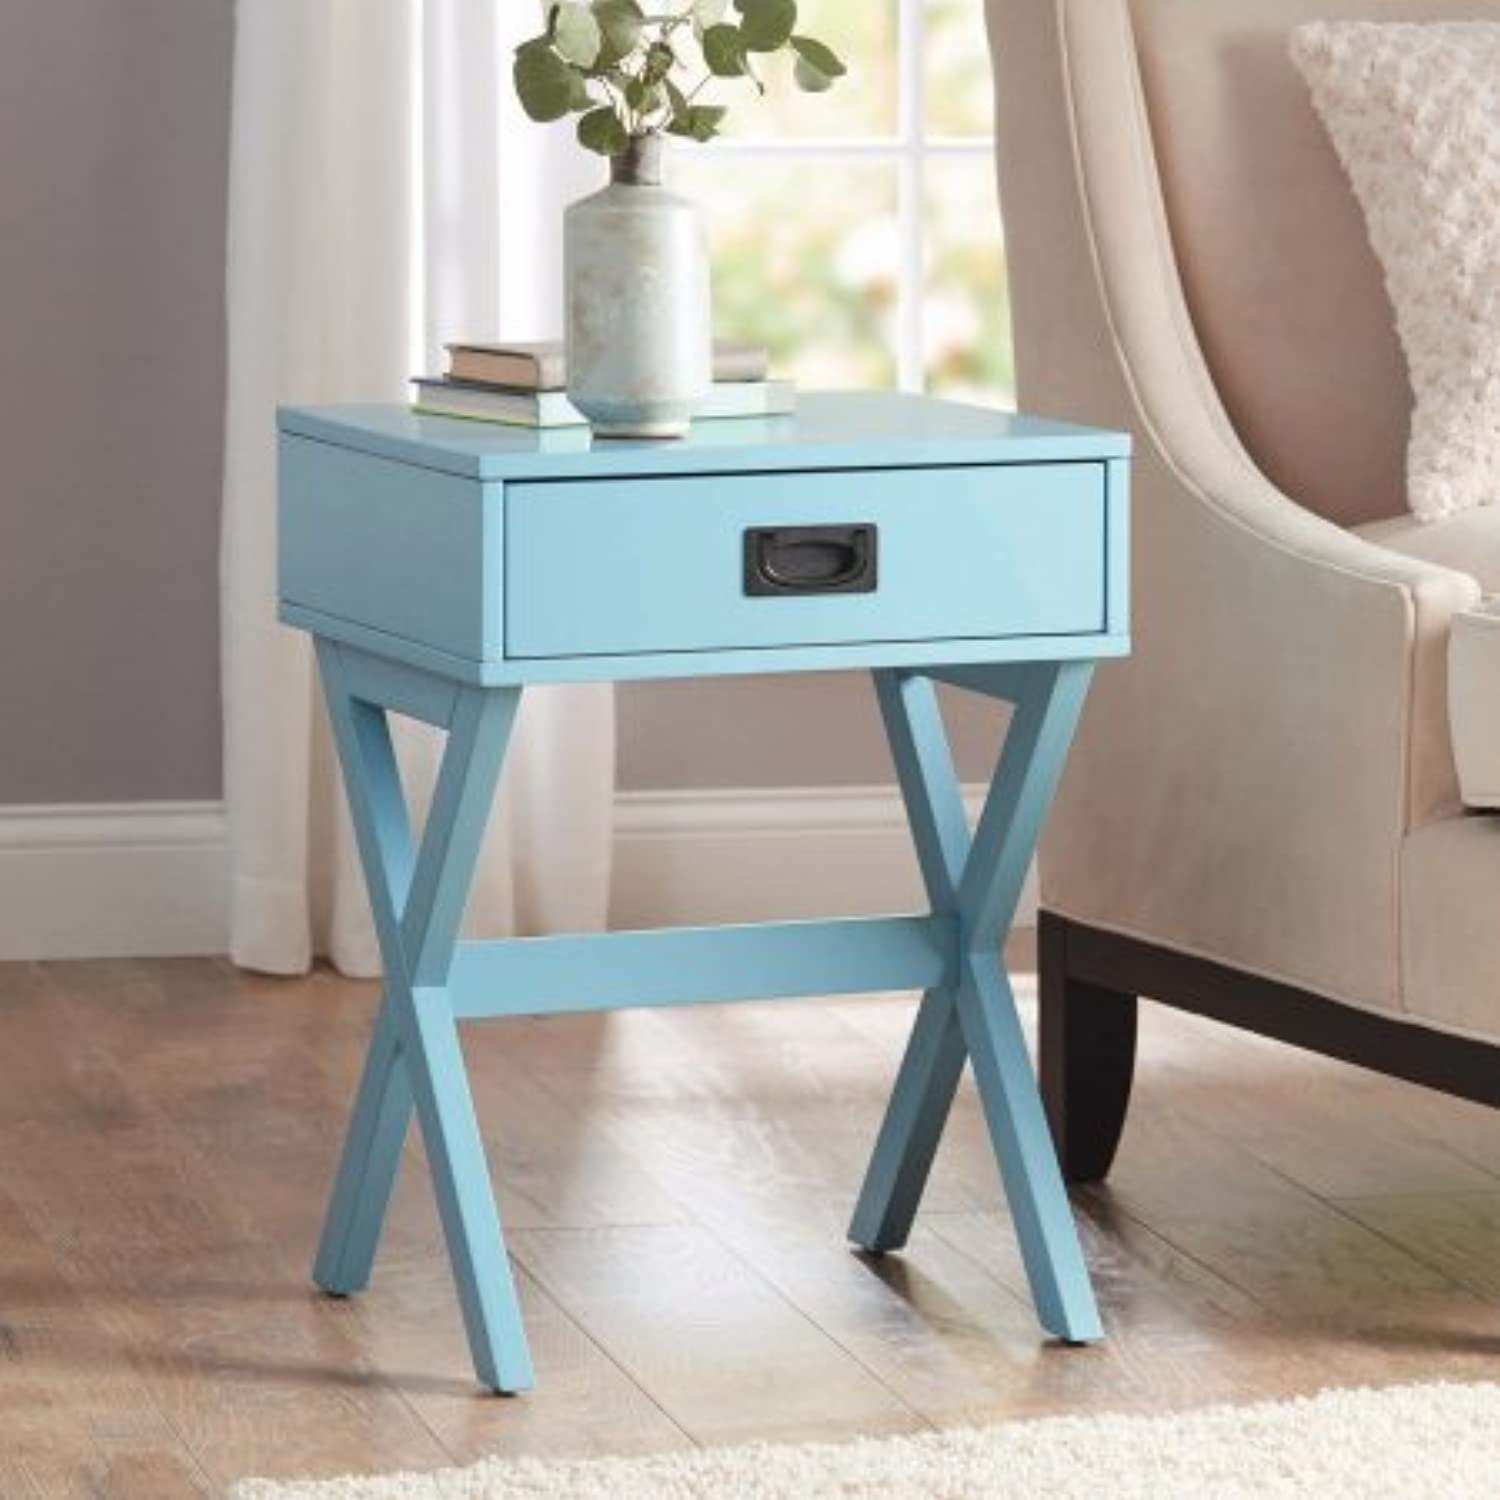 Modern & Stylish X-Leg One-Drawer Accent  Side Table or Nightstand in TEAL, 24-in (61cm) High